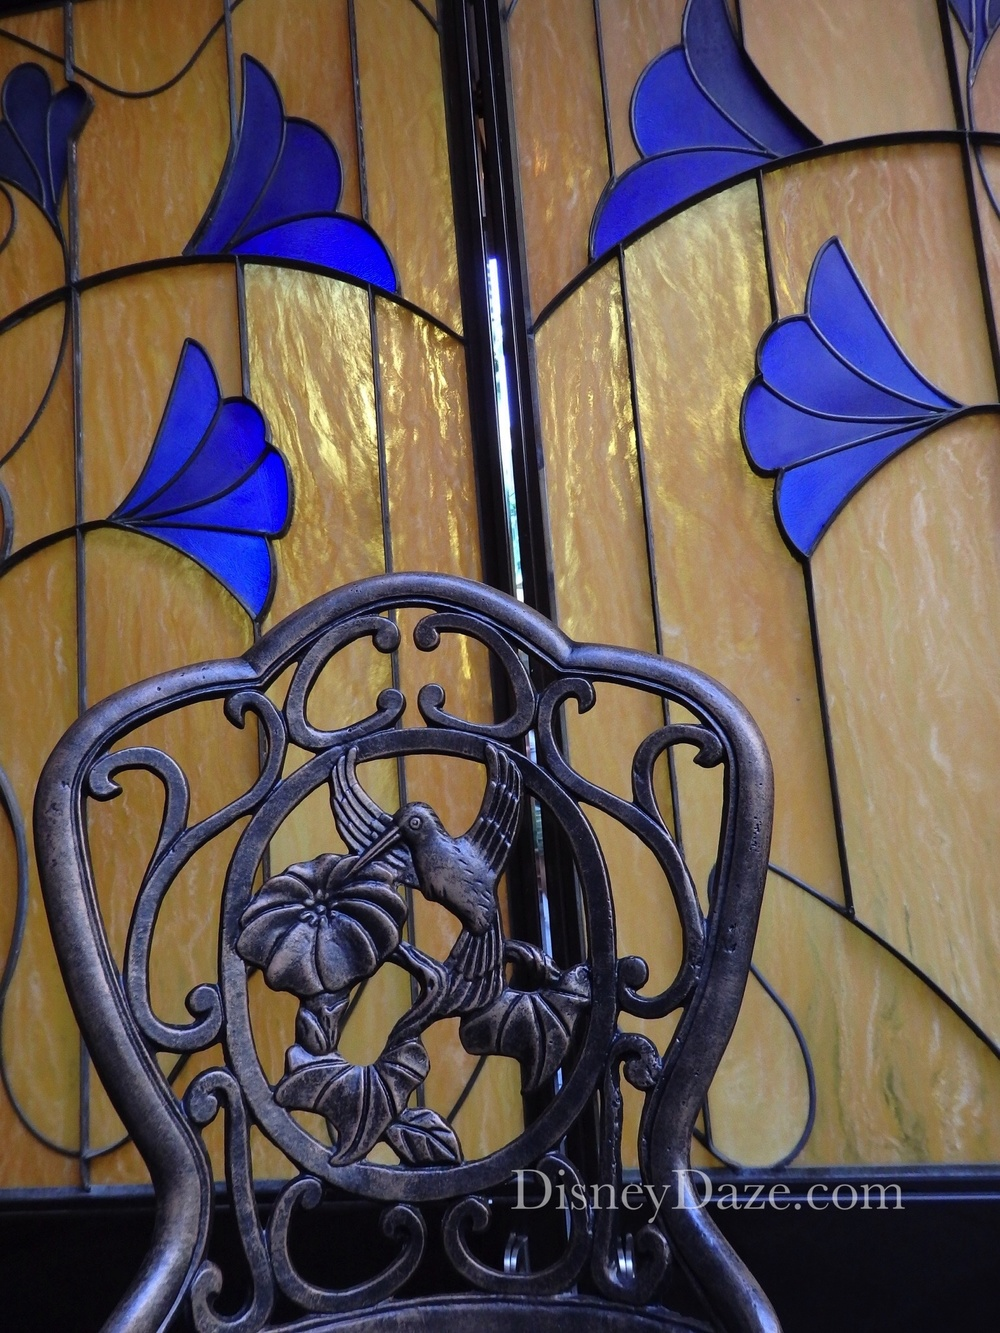 Club 33 Stained Glass door and chair